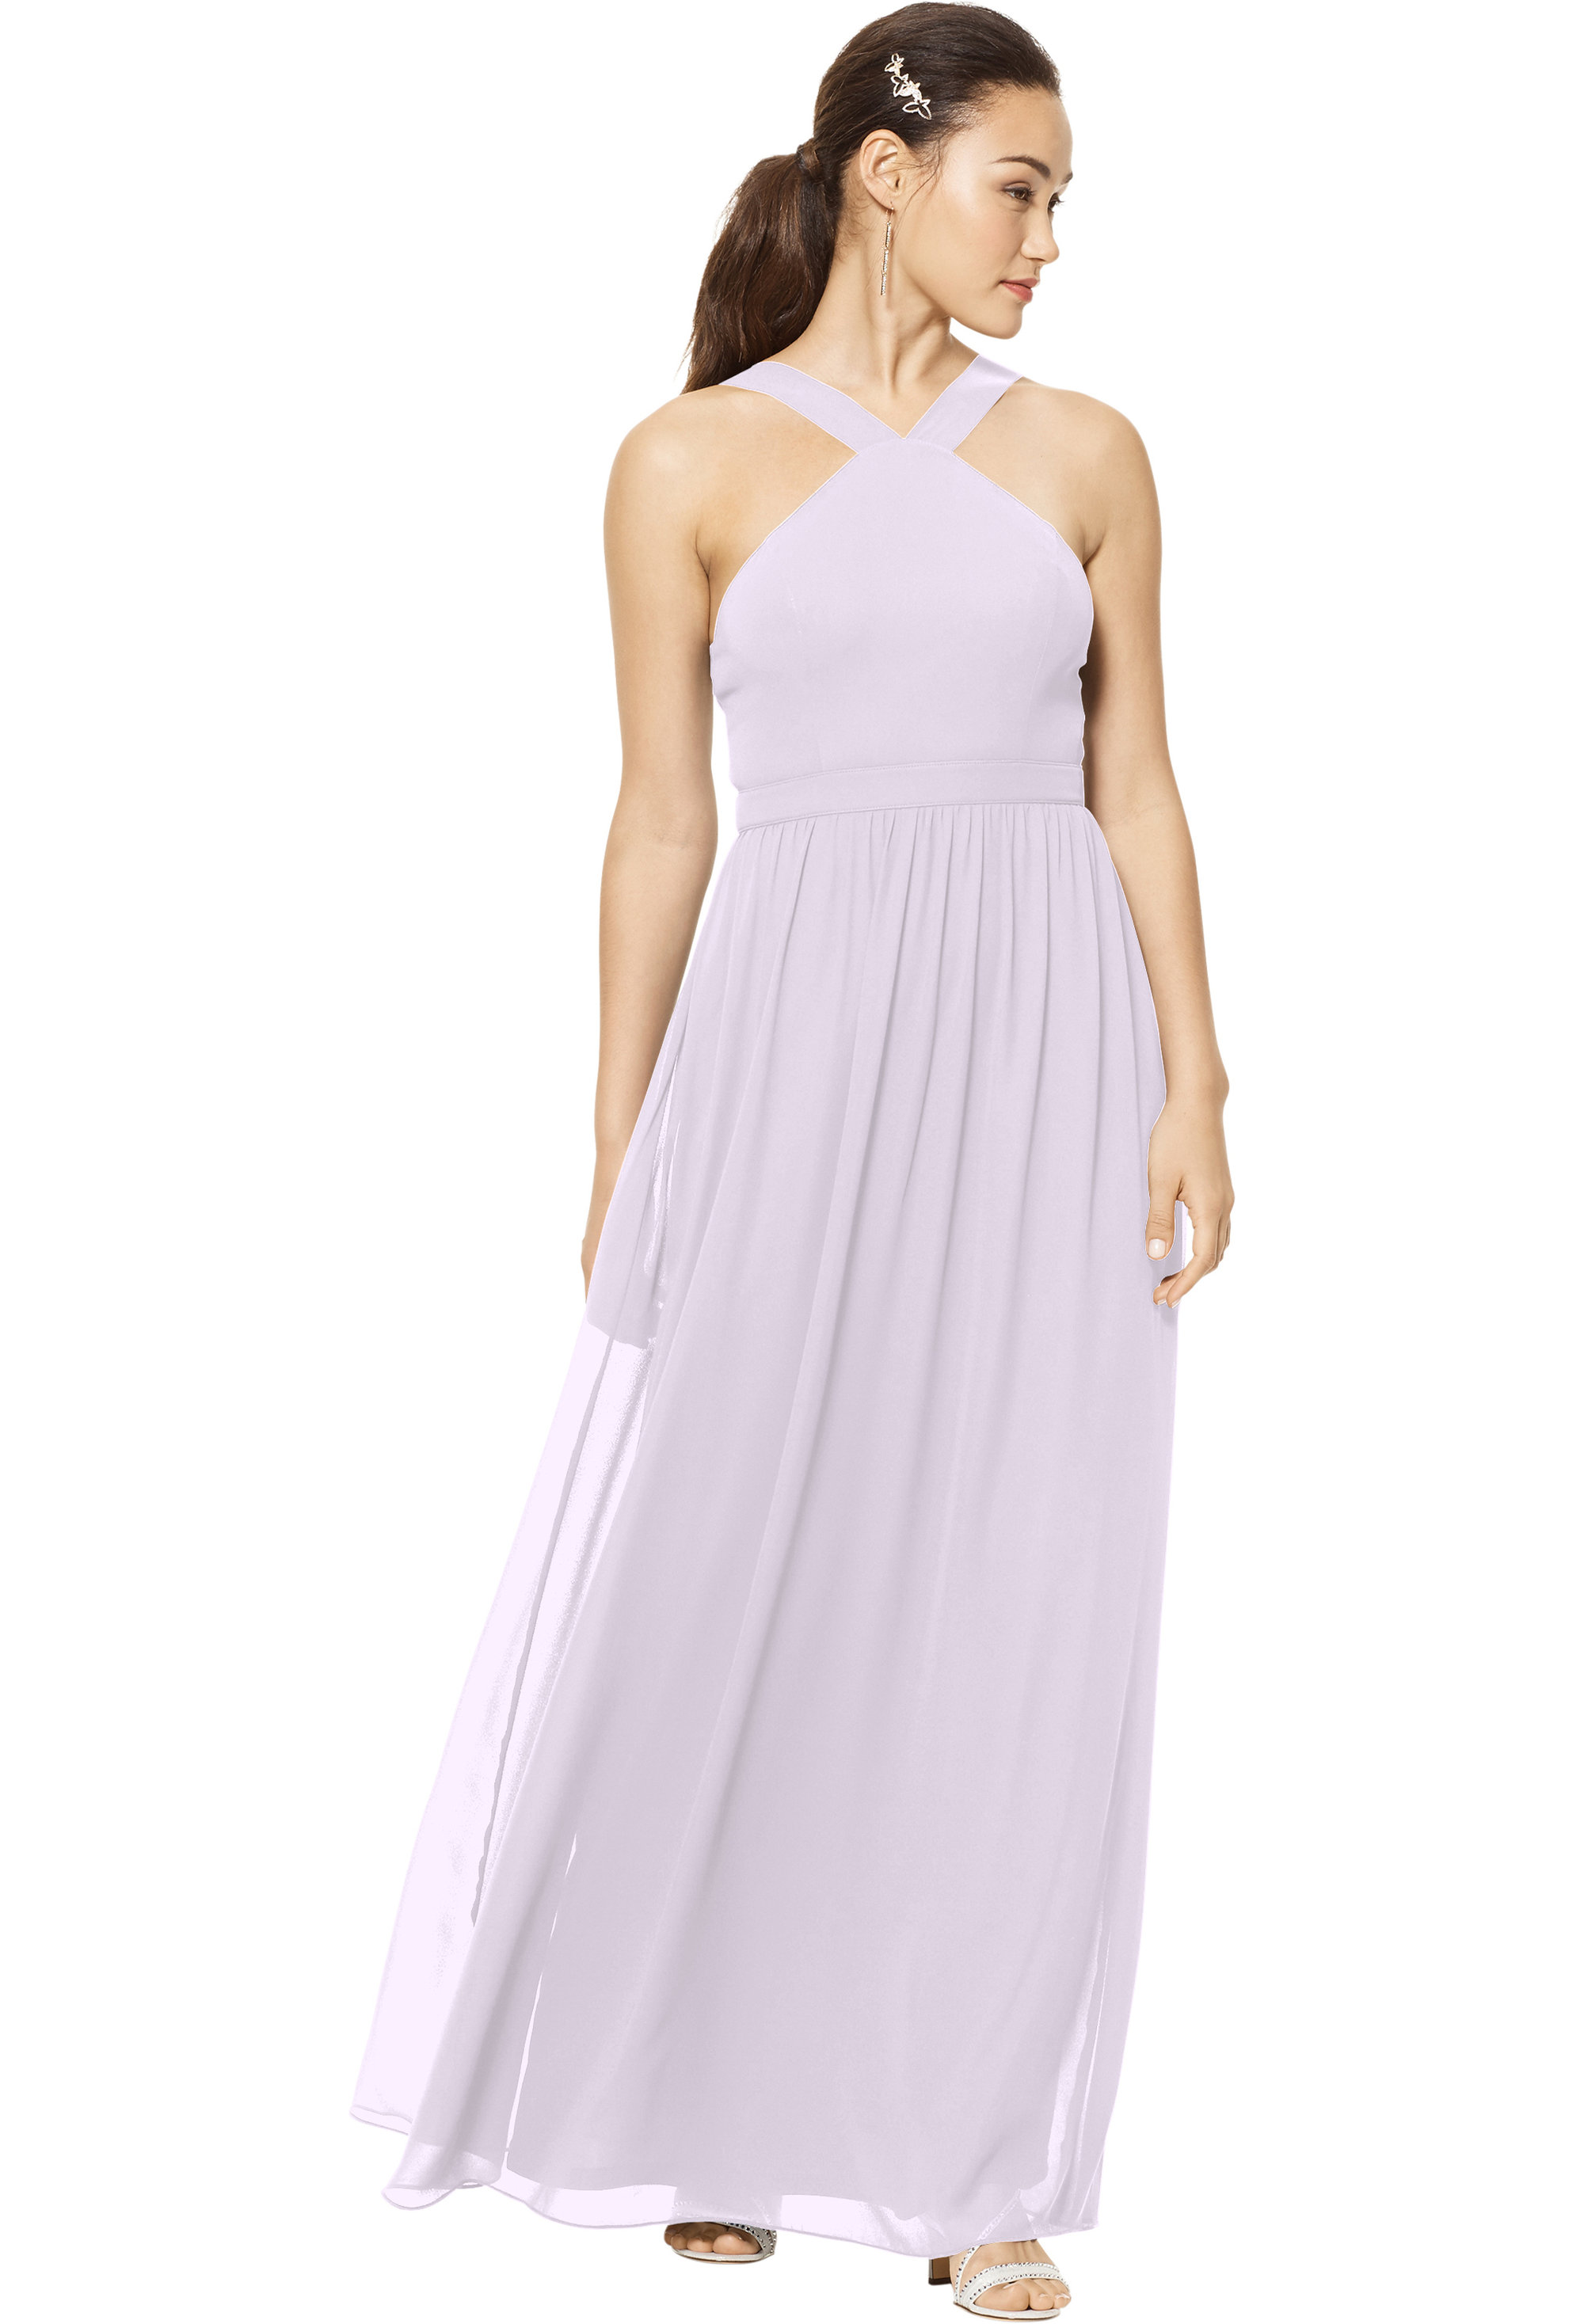 Bill Levkoff VIOLET Chiffon Sleeveless A-line gown, $150.00 Front